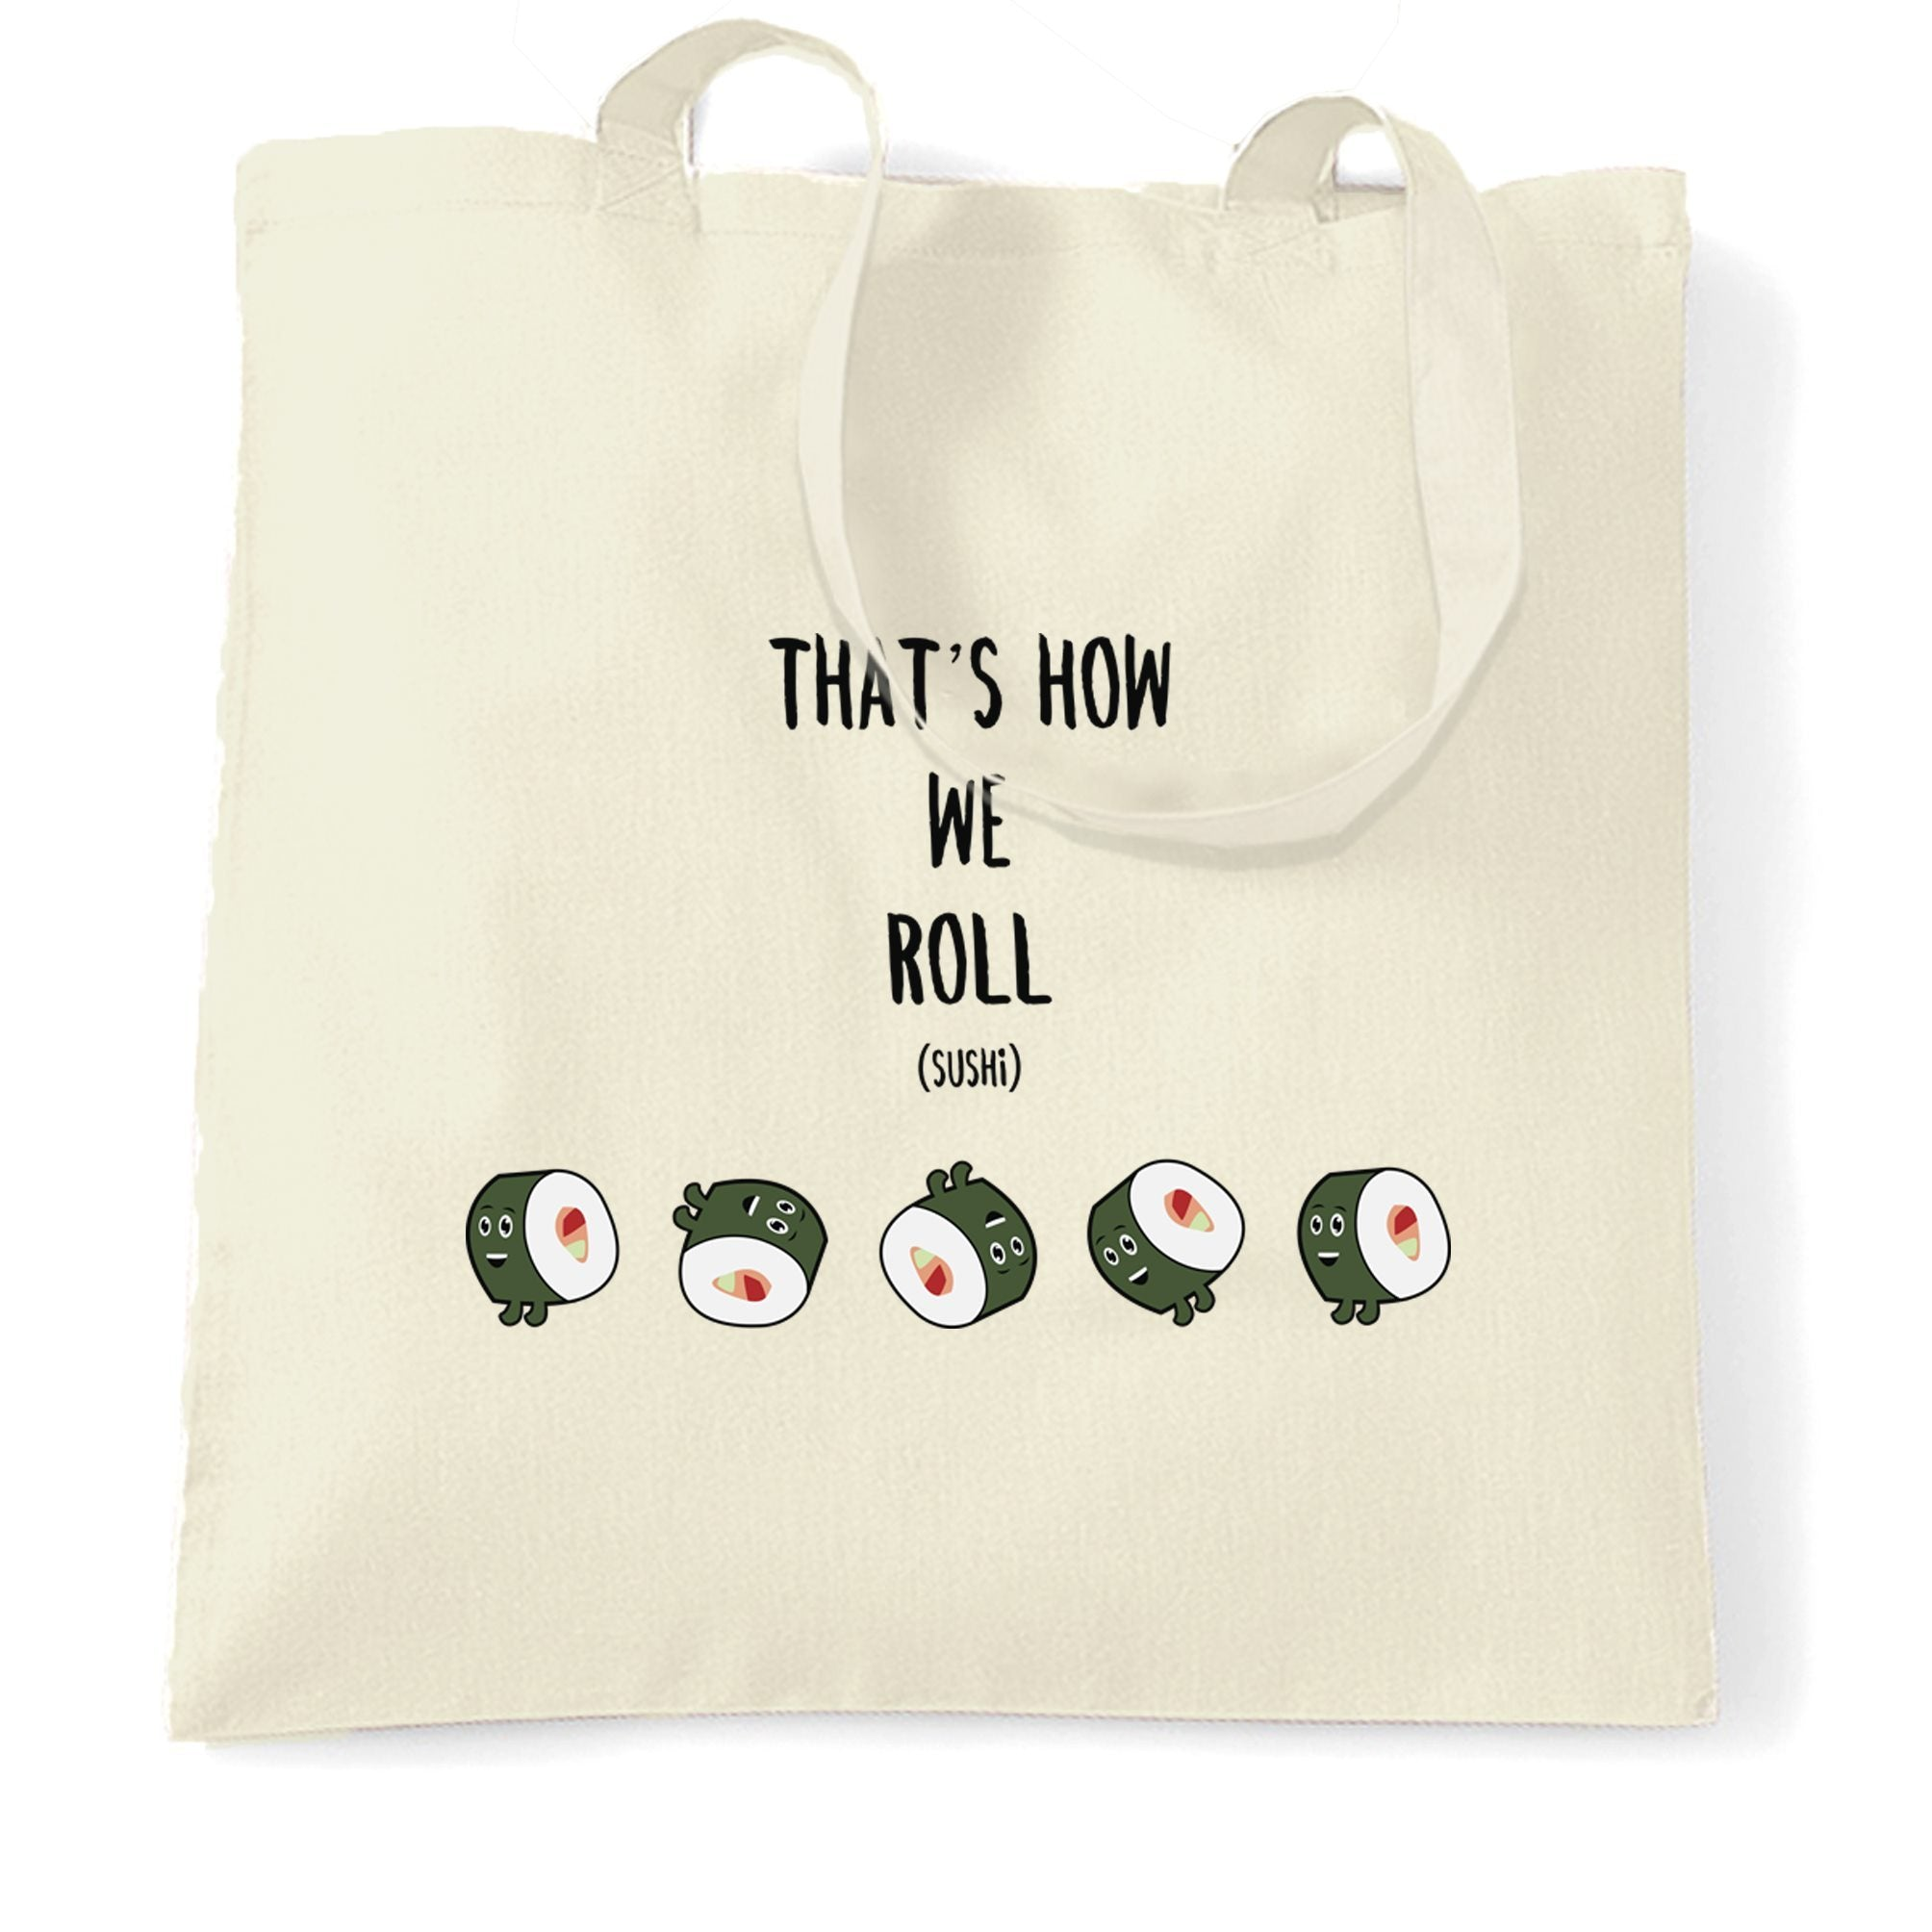 Joke Food Tote Bag That's How We Sushi Roll Pun Slogan